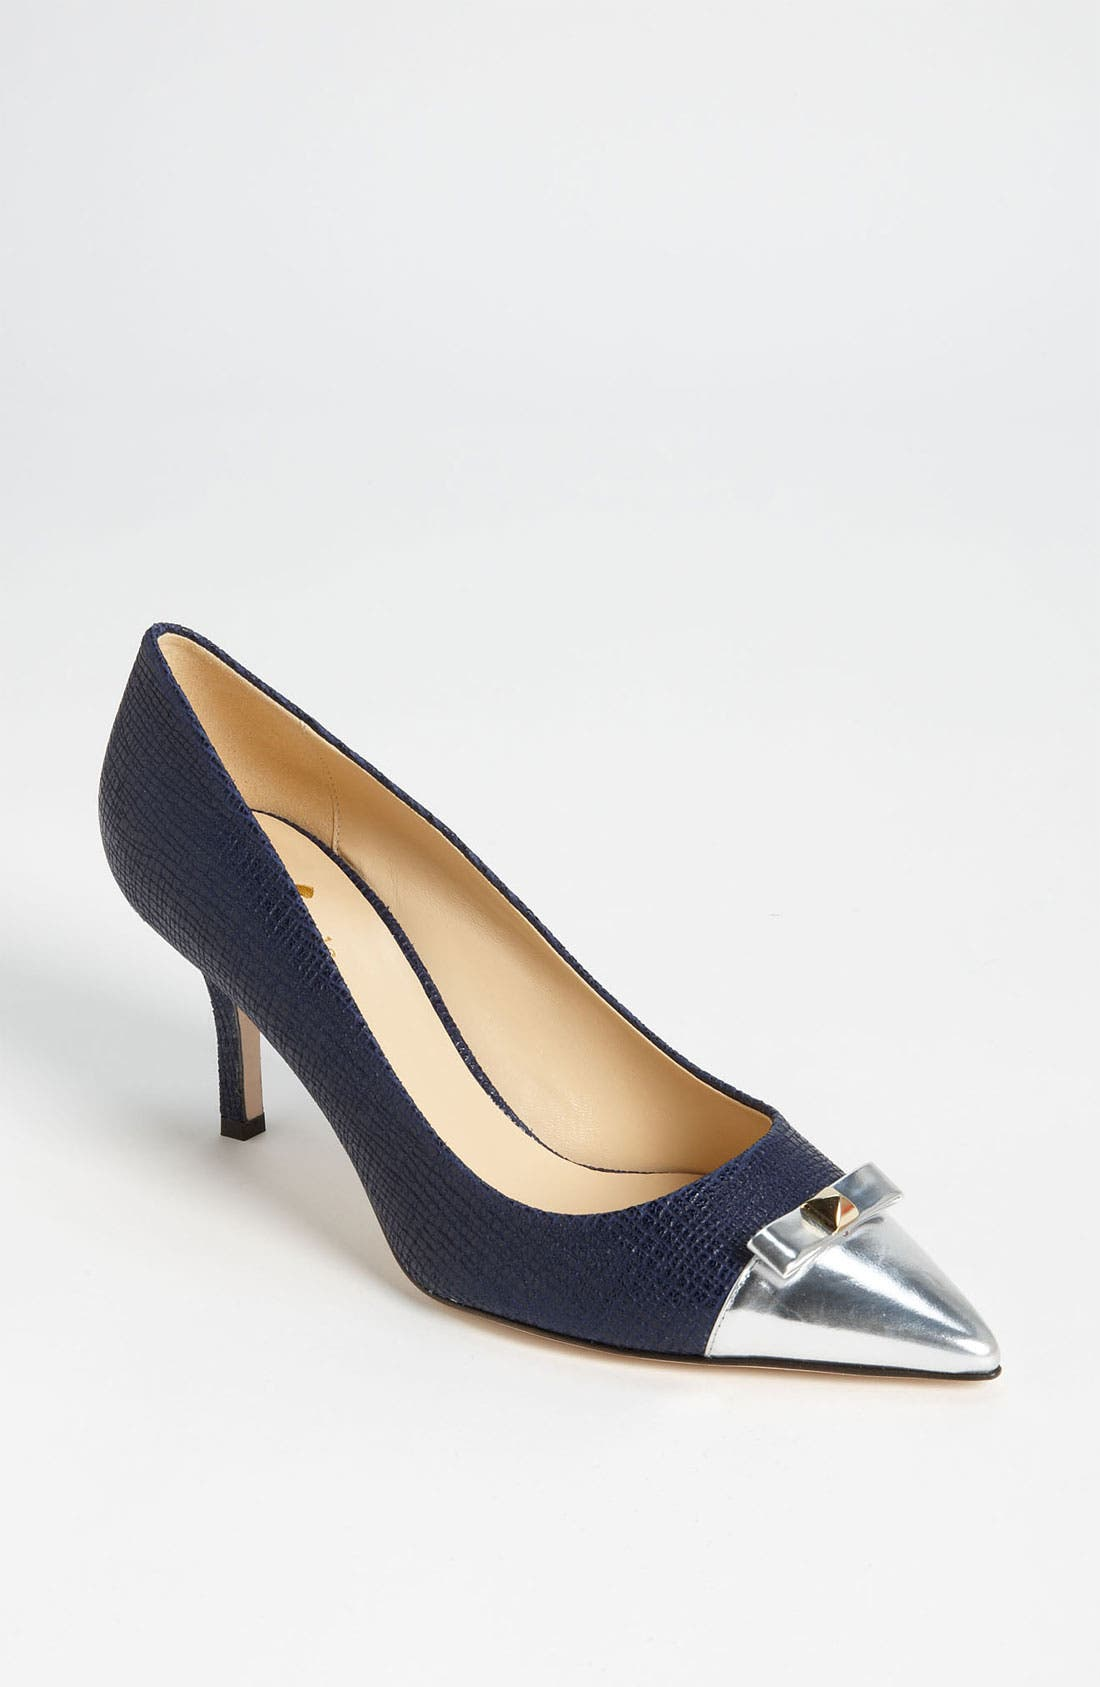 Main Image - kate spade new york 'jiji' pump